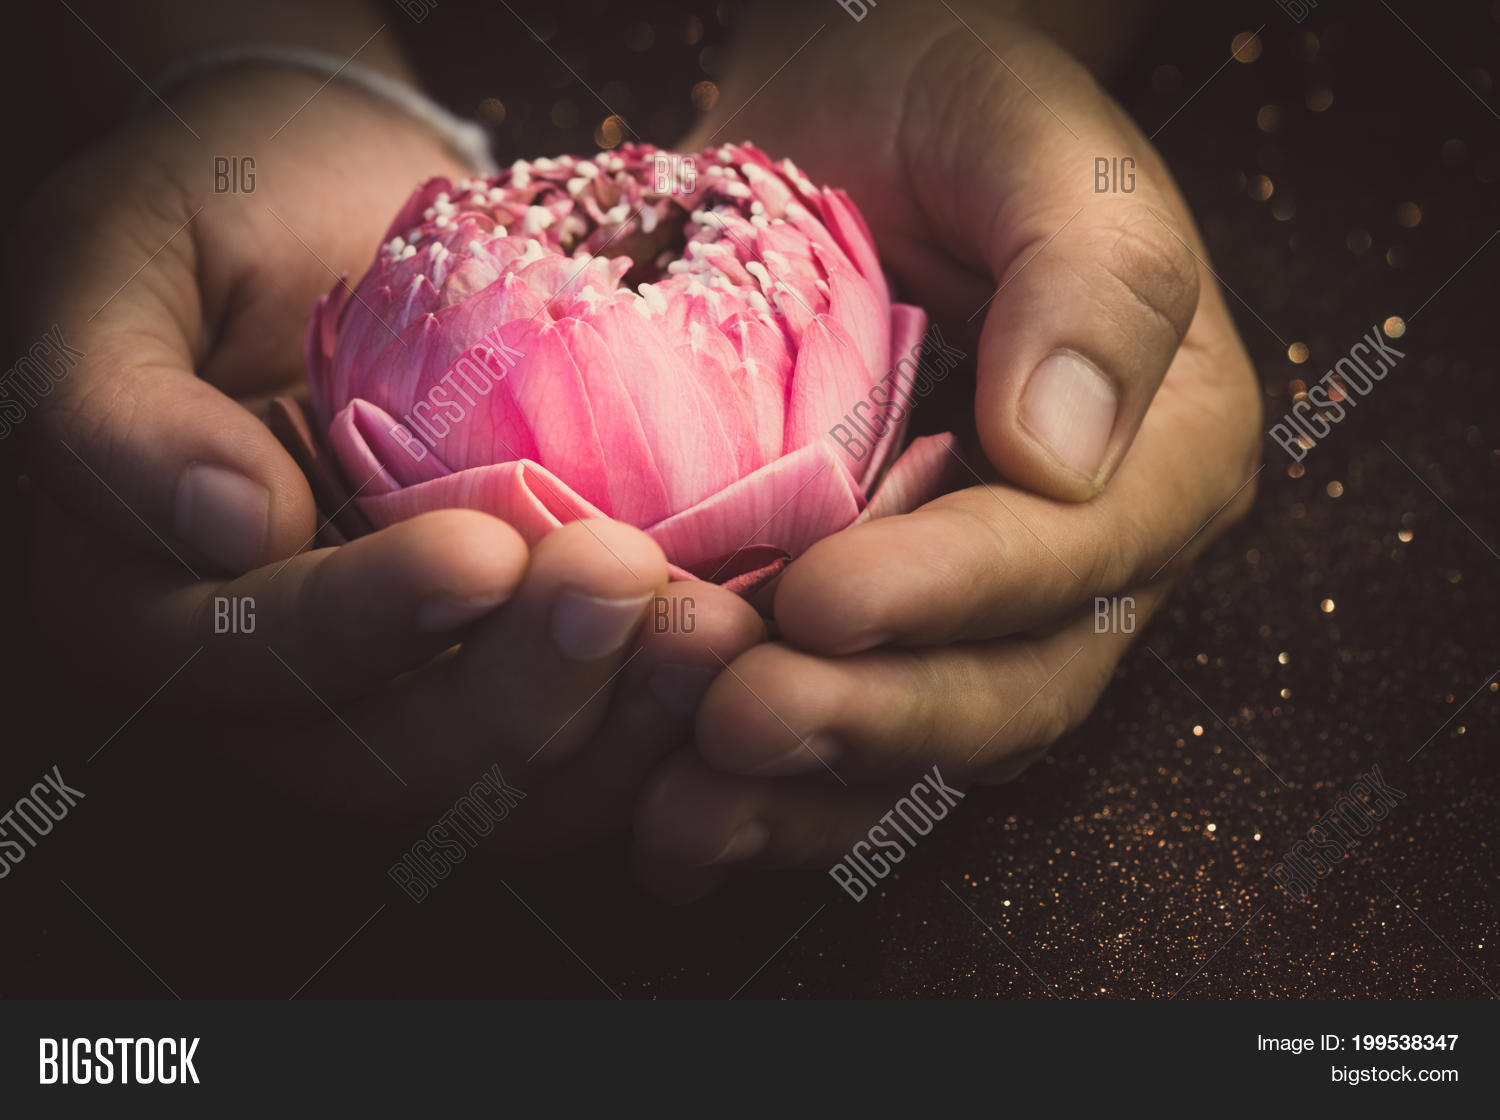 Pink Lotus Flower Image Photo Free Trial Bigstock